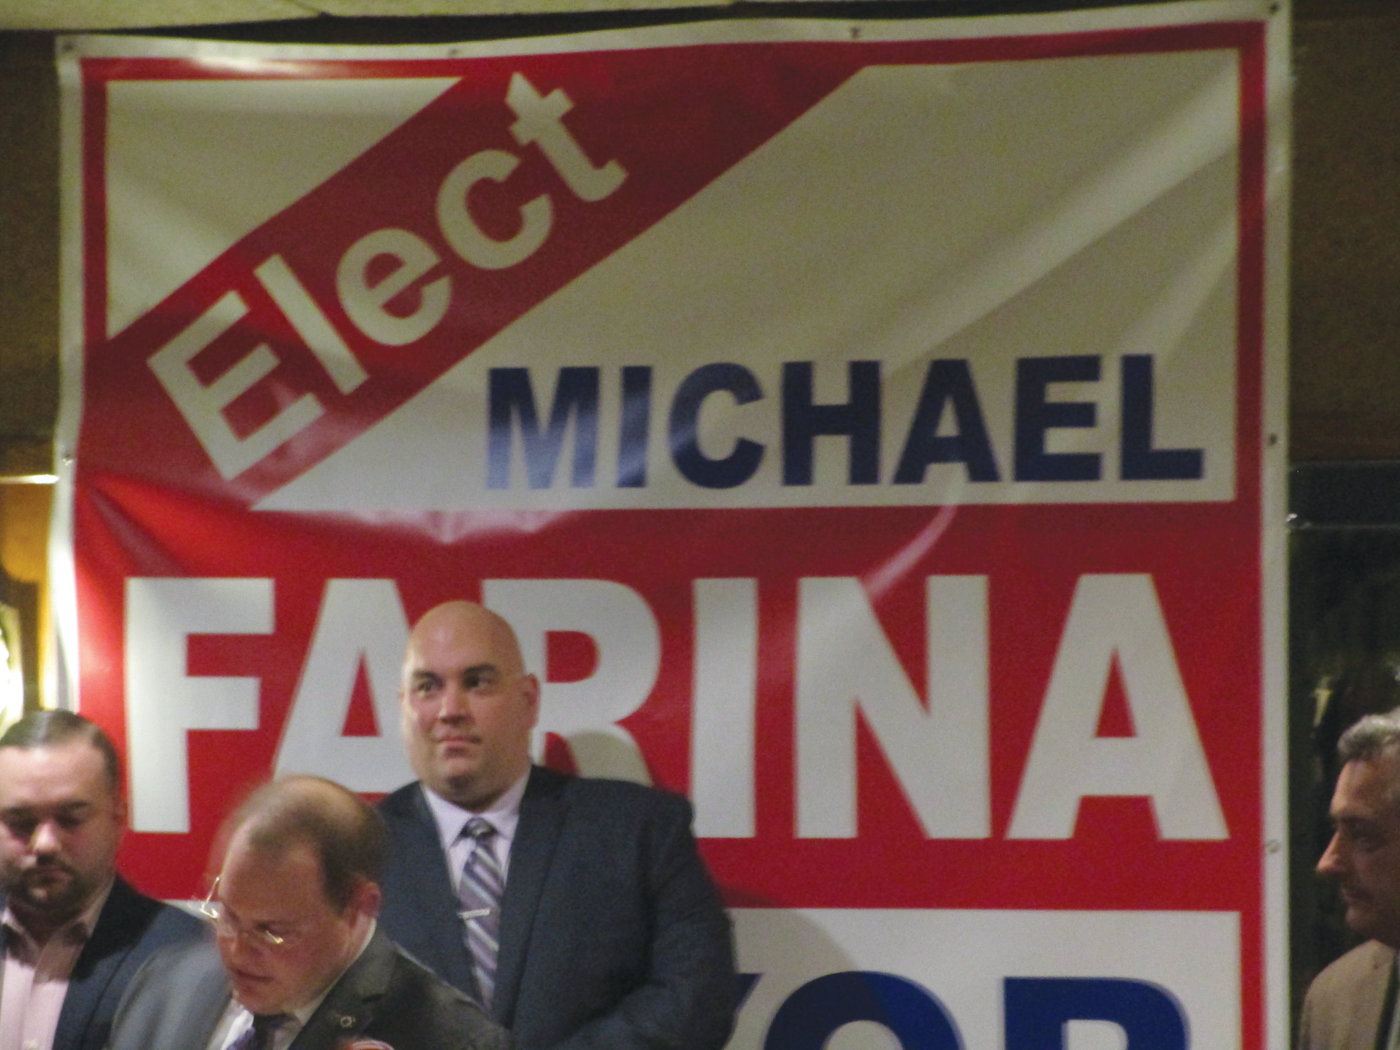 City Council President Michael Farina is pictured during his mayoral campaign announcement earlier this year.